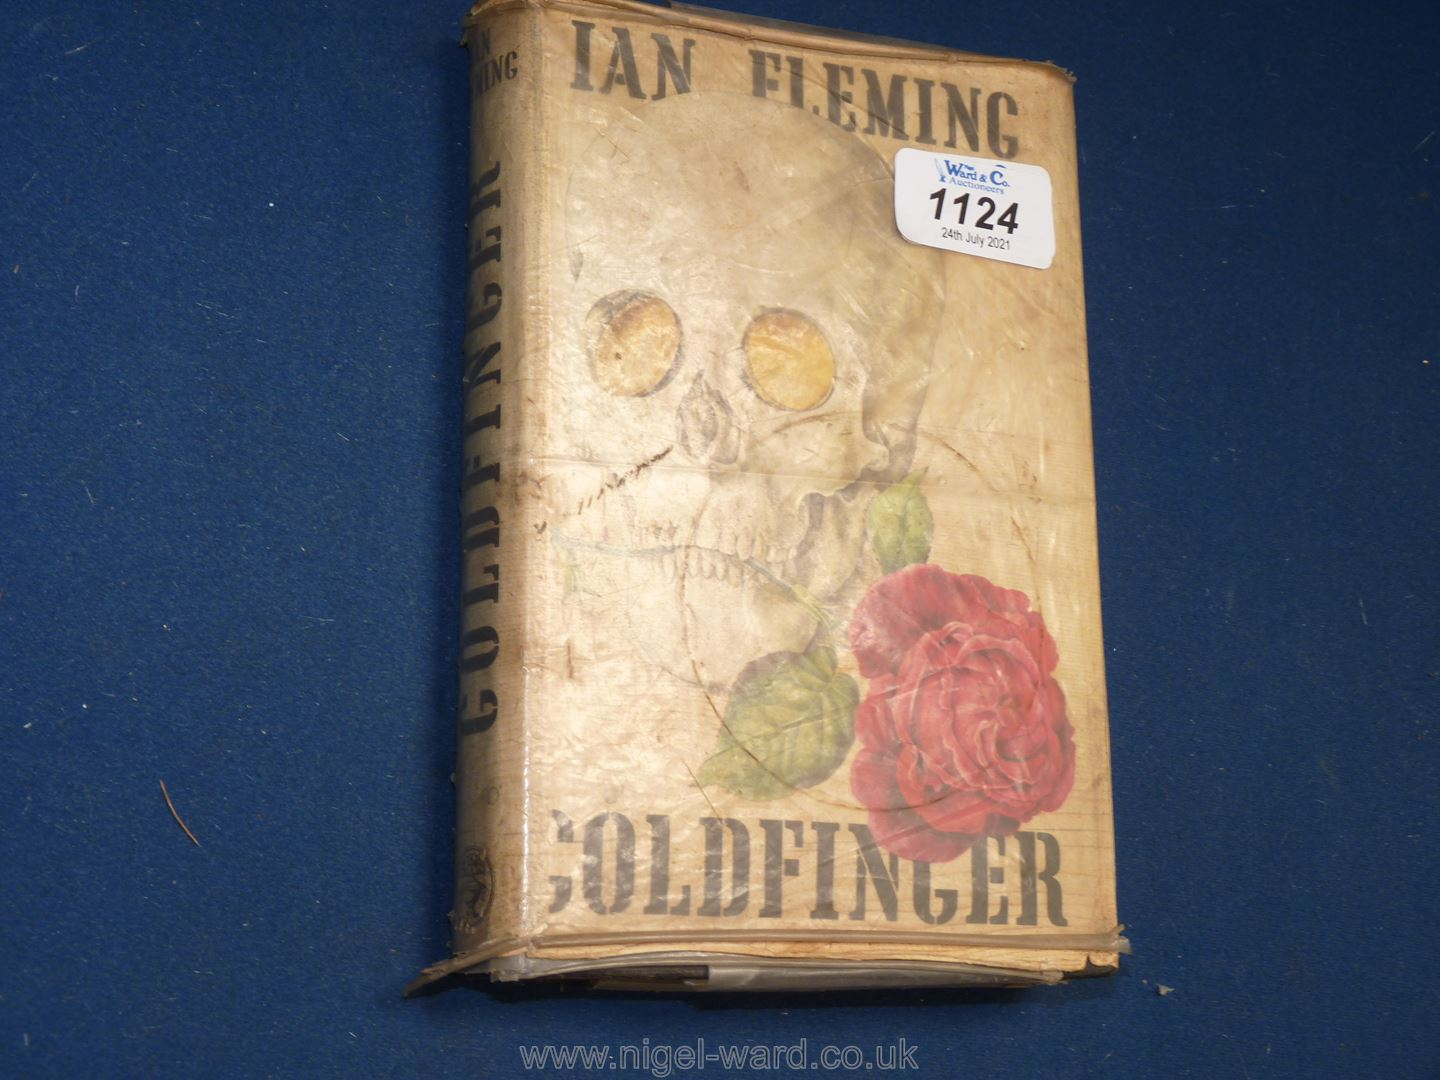 A first edition of 'Goldfinger' by Ian Fleming, Library edition, dust cover worn, loose binding.